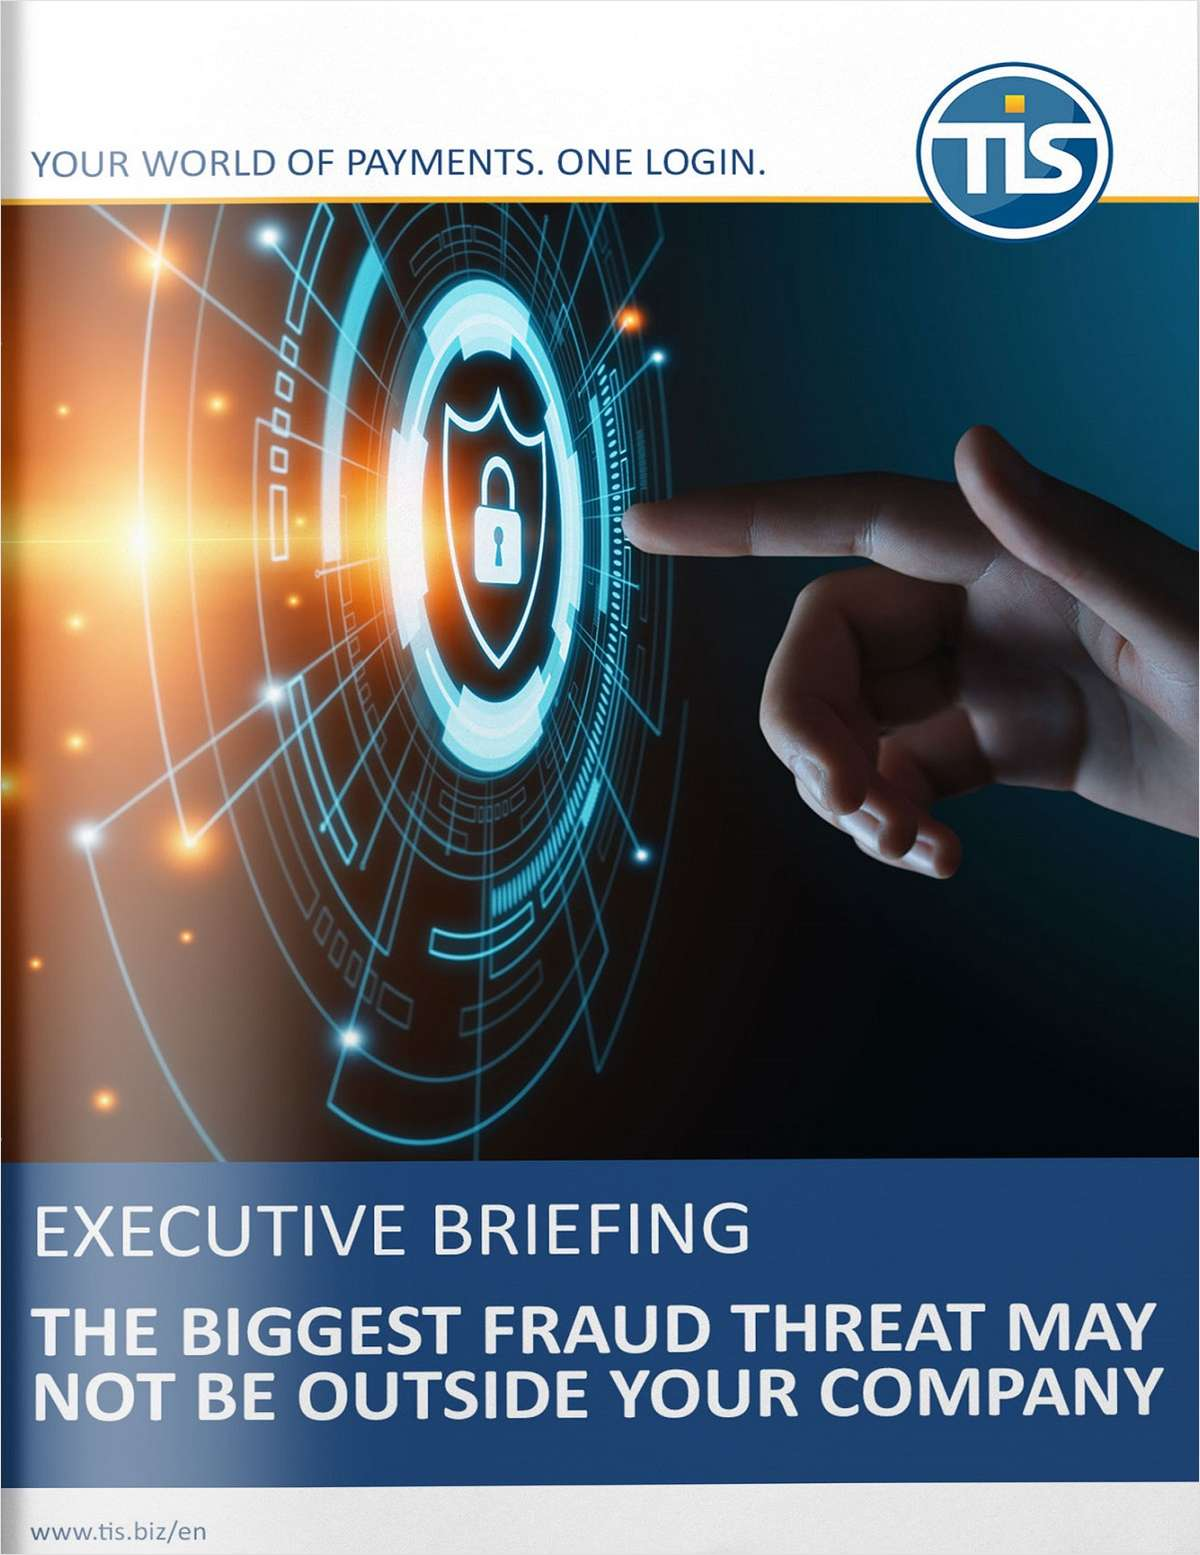 The Biggest Fraud Threat May Not Be Outside Your Company